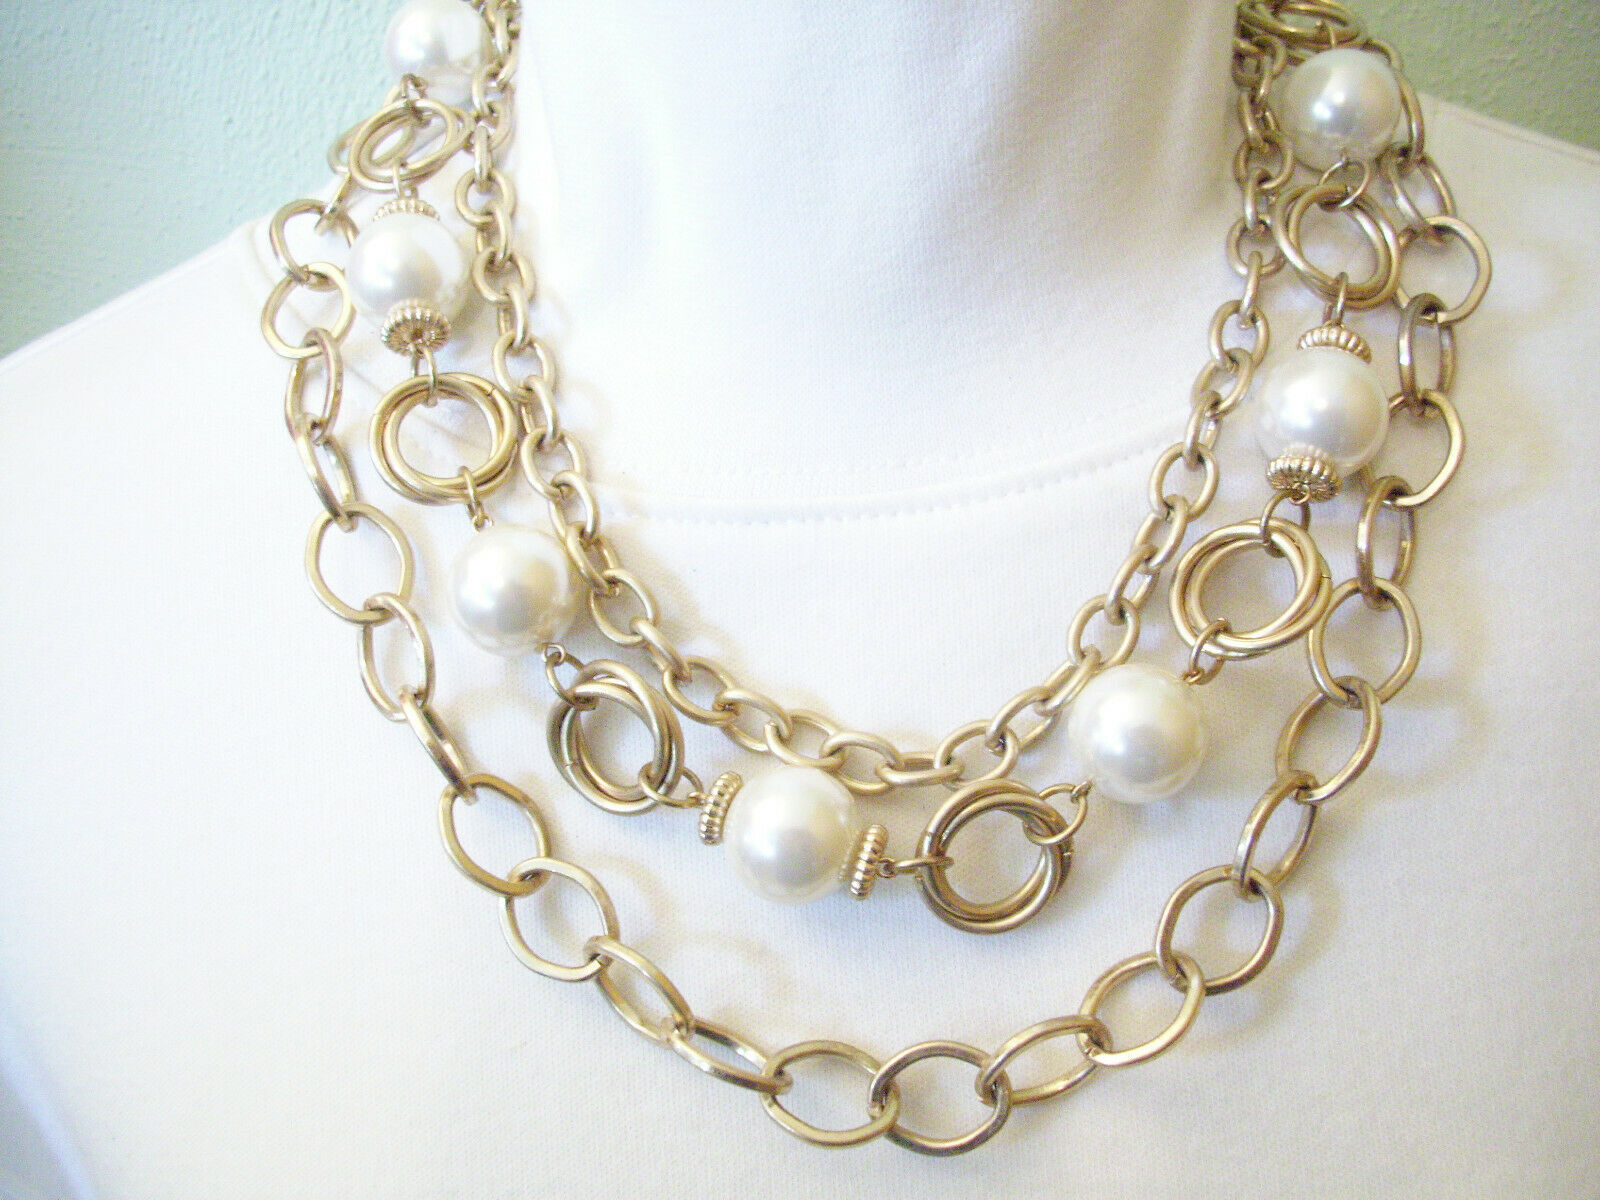 PREMIER DESIGN Big Pearls n Chains Convertible Necklace Choker Gold Plate Vintge